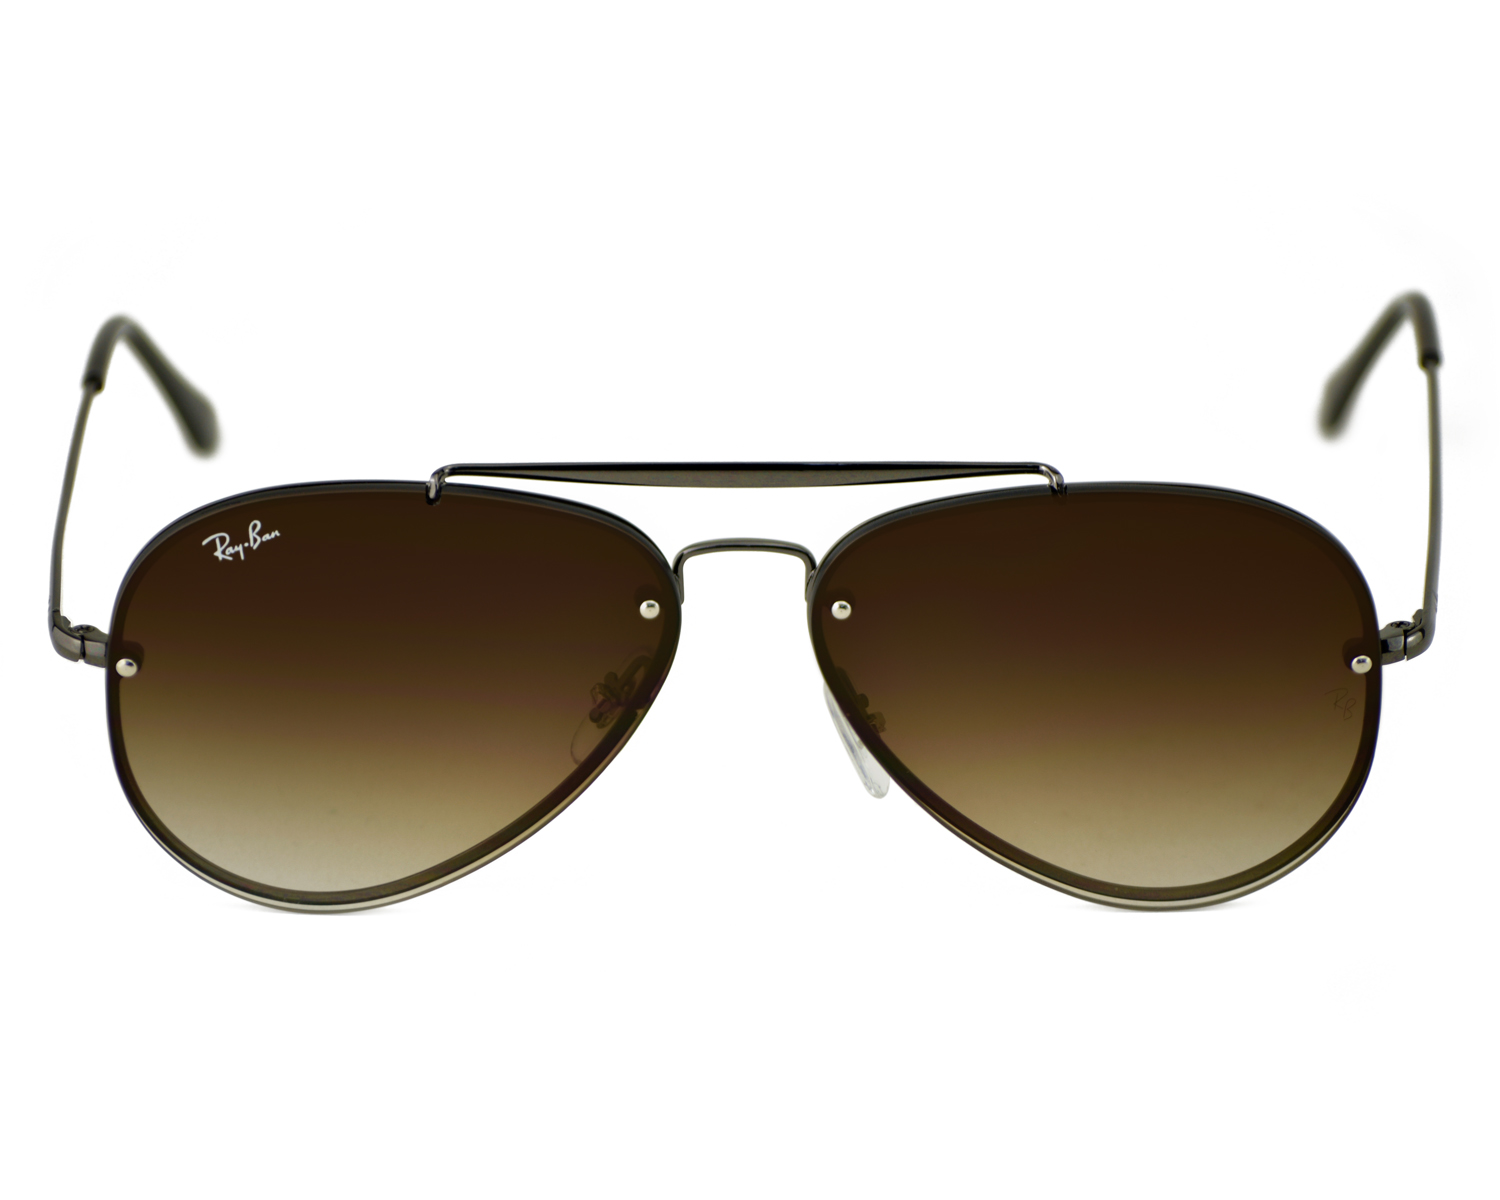 397419a420 Ray-Ban RB3584N Blaze Aviator 004 13 Gunmetal Frame Brown Gradient Lenses  Unisex Sunglasses 58mm